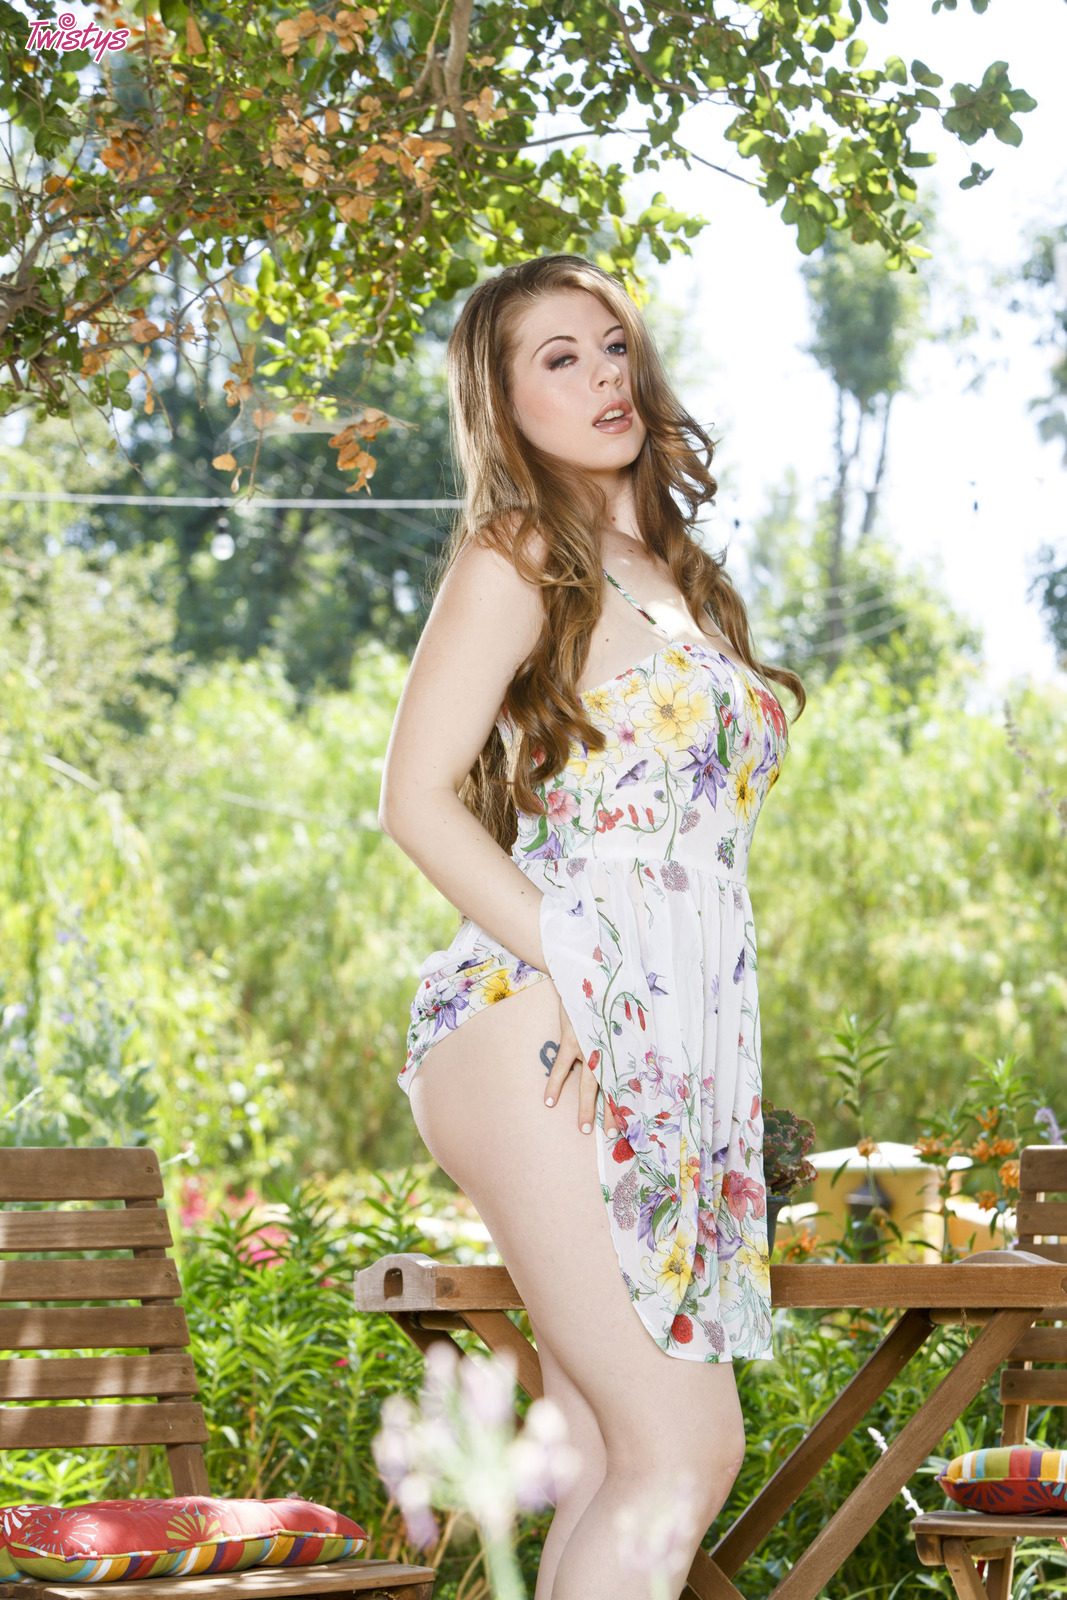 Jessi June Nude - 217 Pictures: Rating 9.60/10